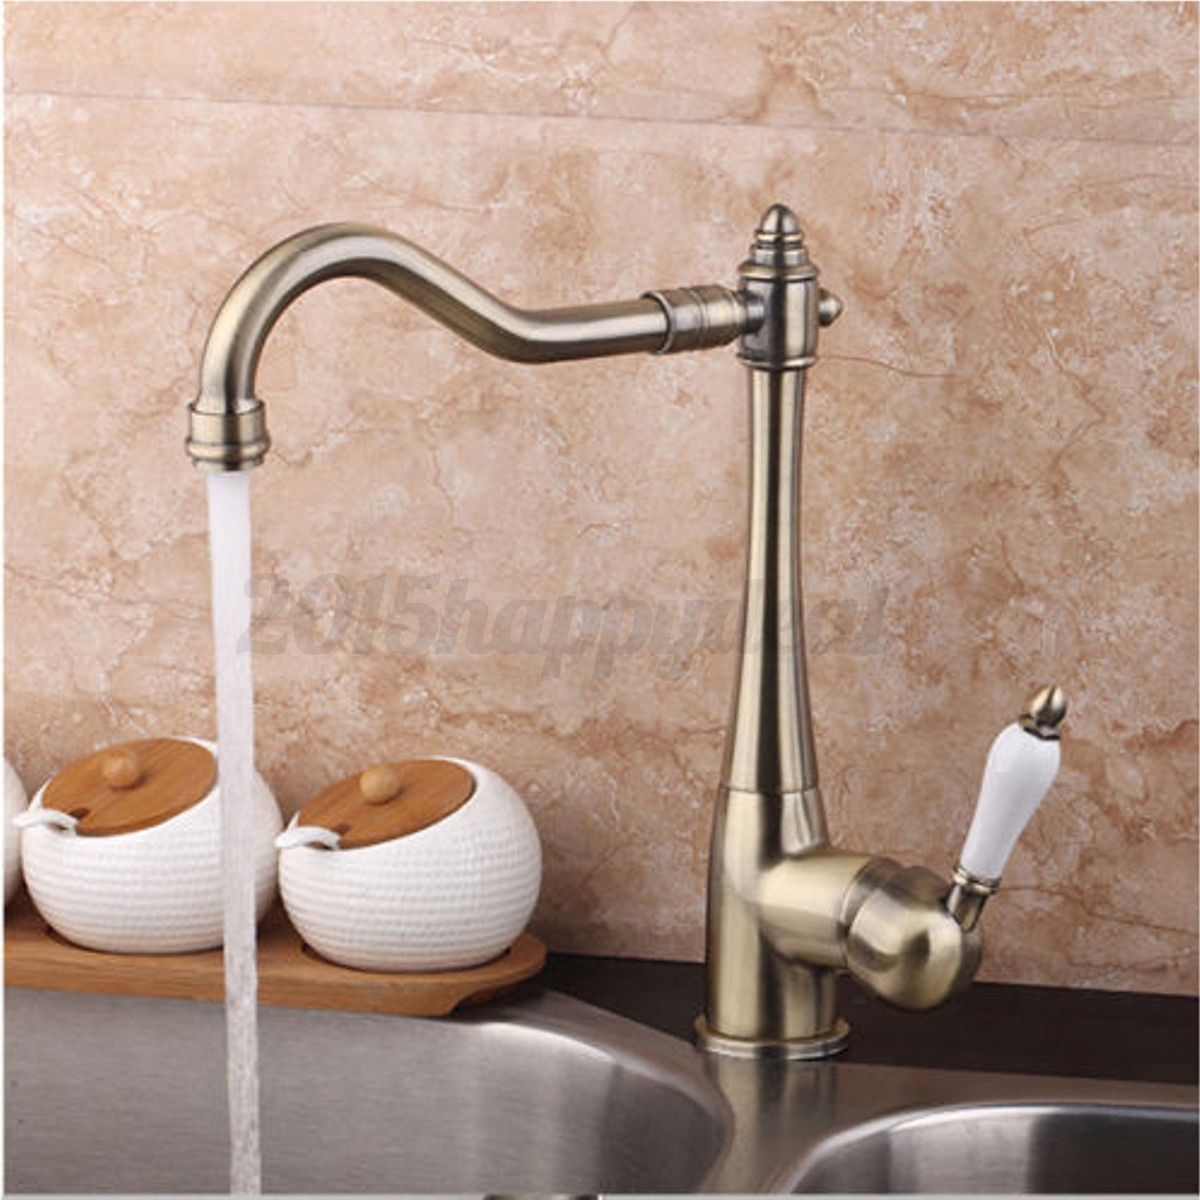 Single double handle kitchen basin sink mixer taps - Robinetterie salle de bain retro ...